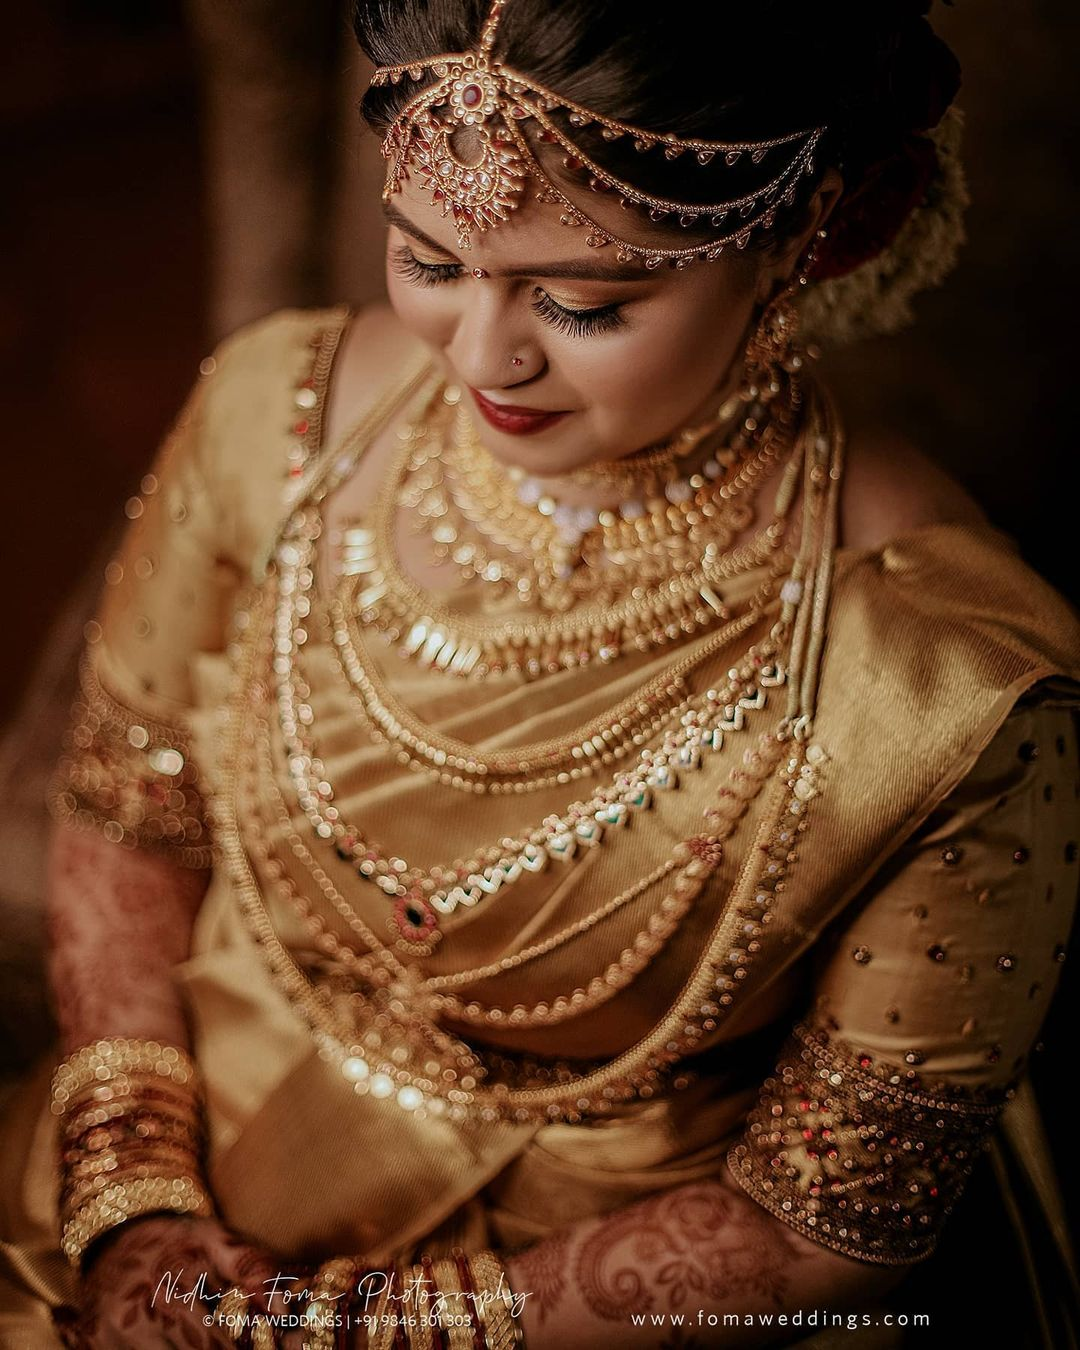 10 wedding photography bride by nidhin foma